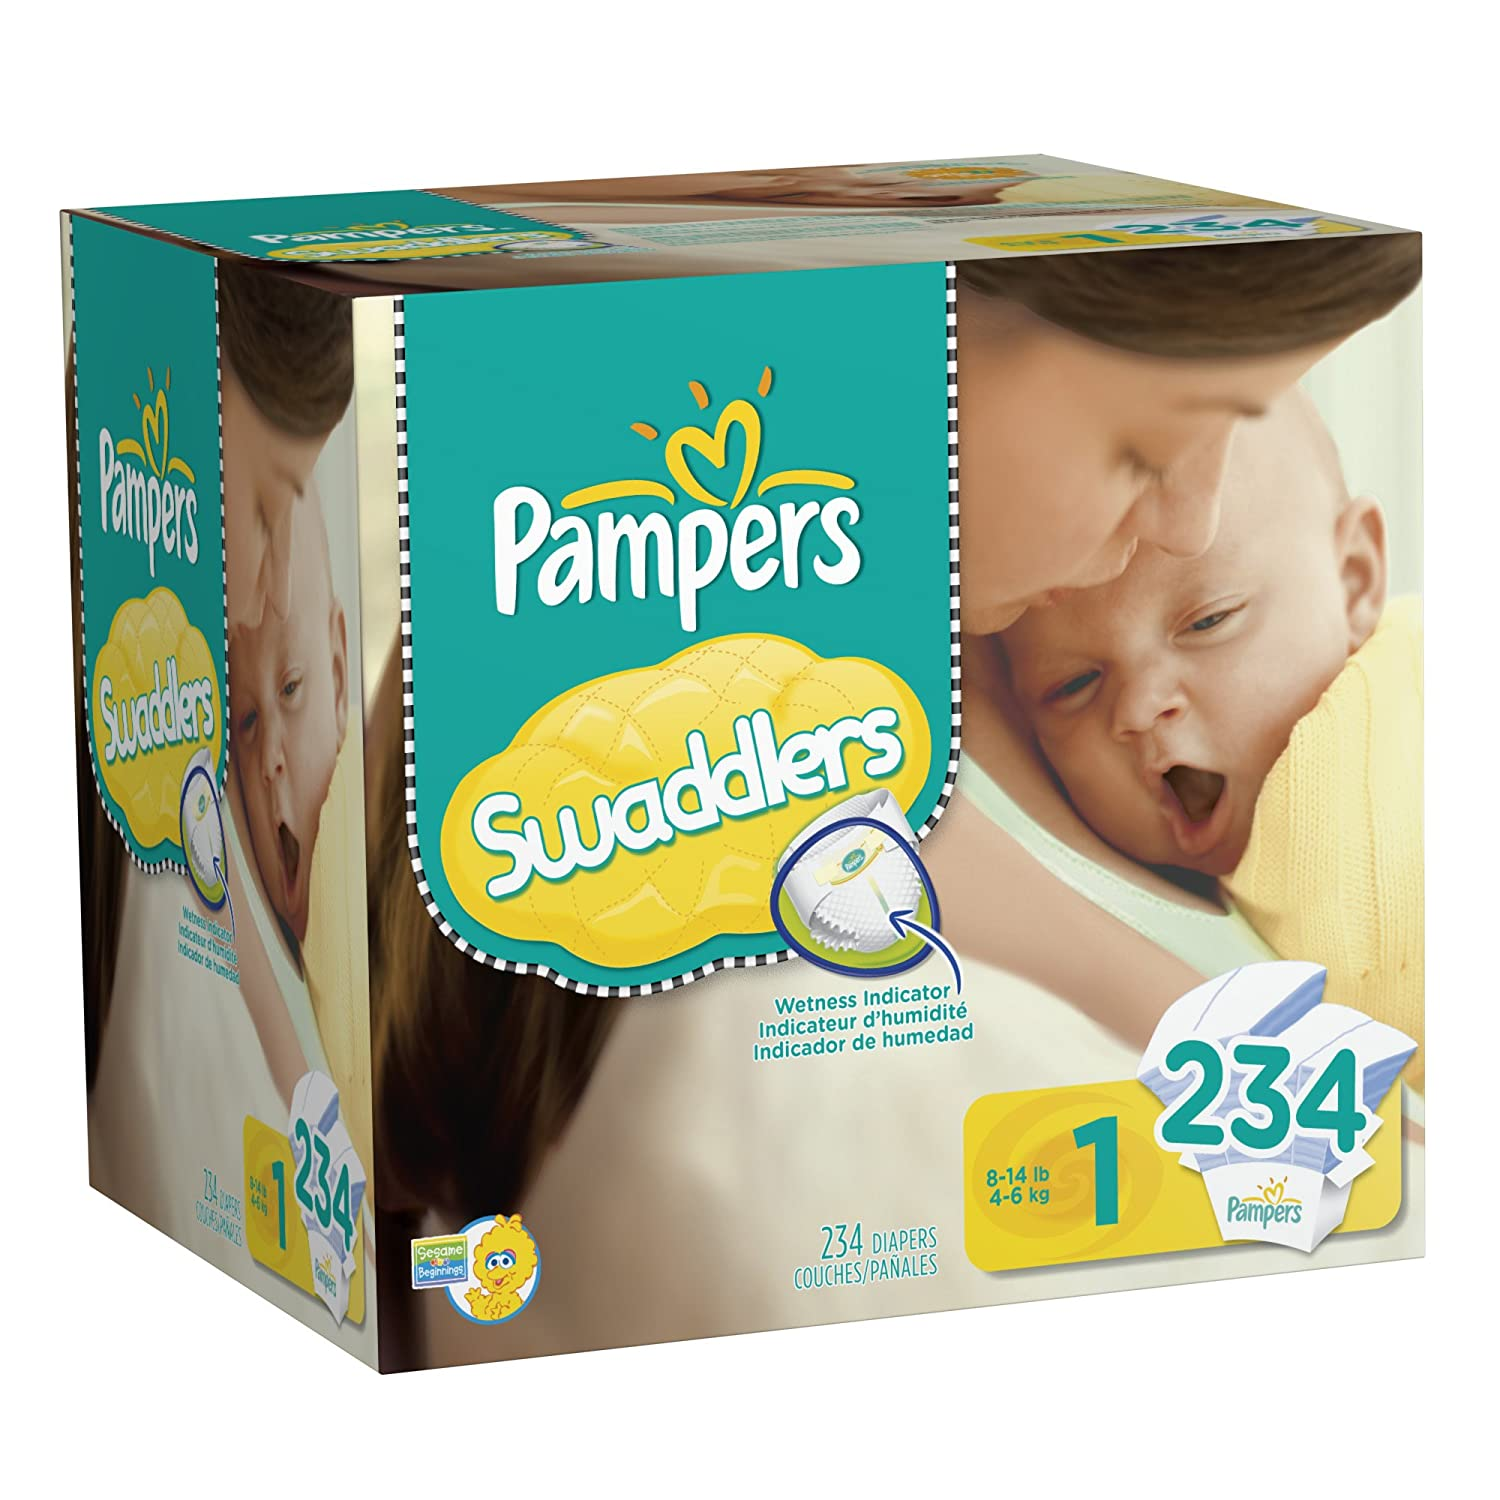 Amazon pampers swaddlers disposable diapers newborn size 1 8 amazon pampers swaddlers disposable diapers newborn size 1 8 14 lb 234 count economy pack plus health personal care nvjuhfo Image collections